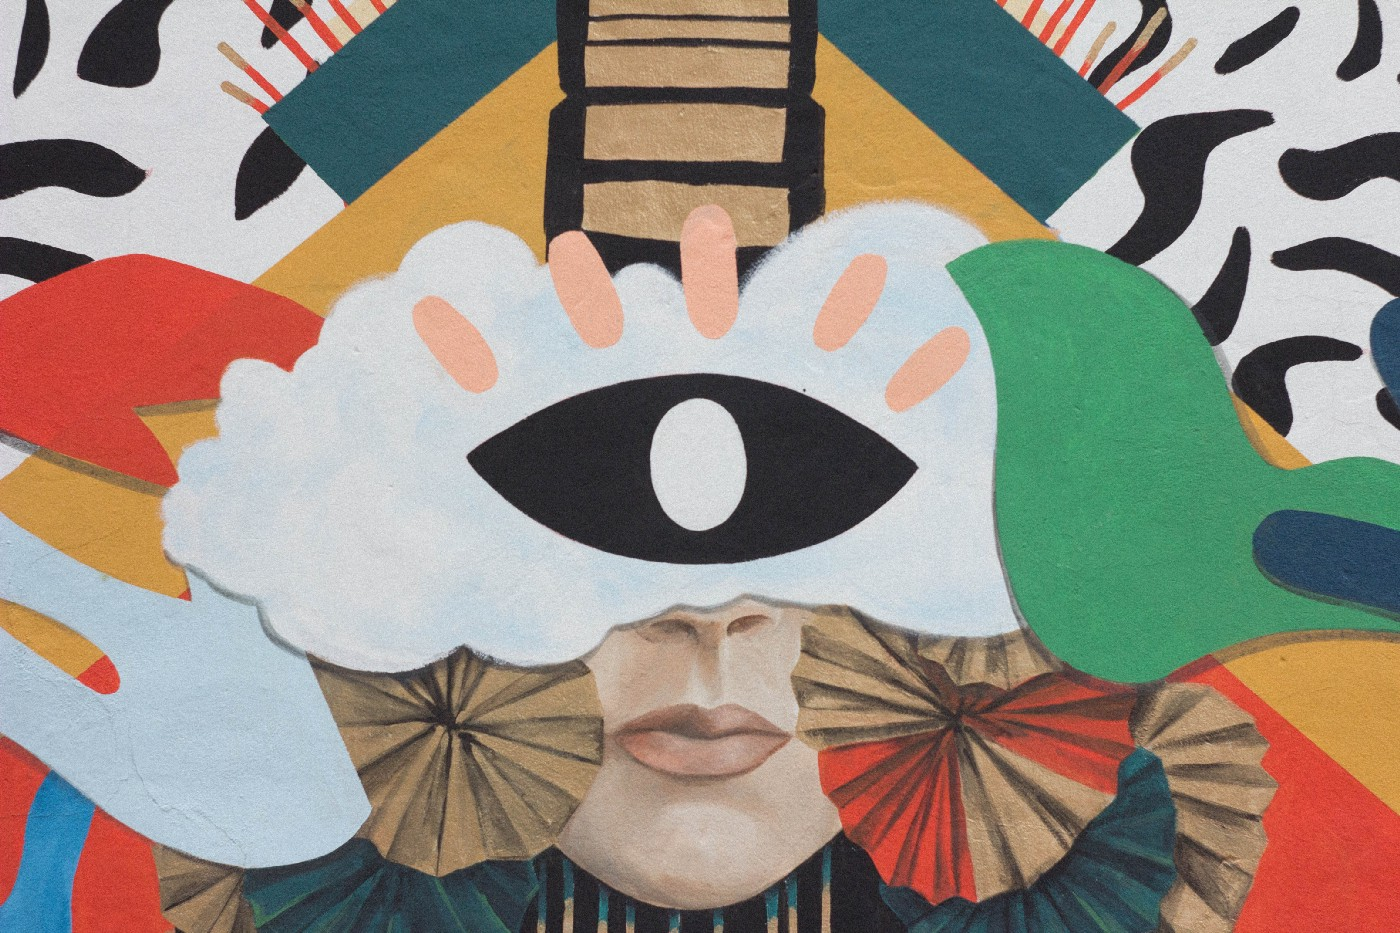 A collage with an eye over a face, and other abstract elements.